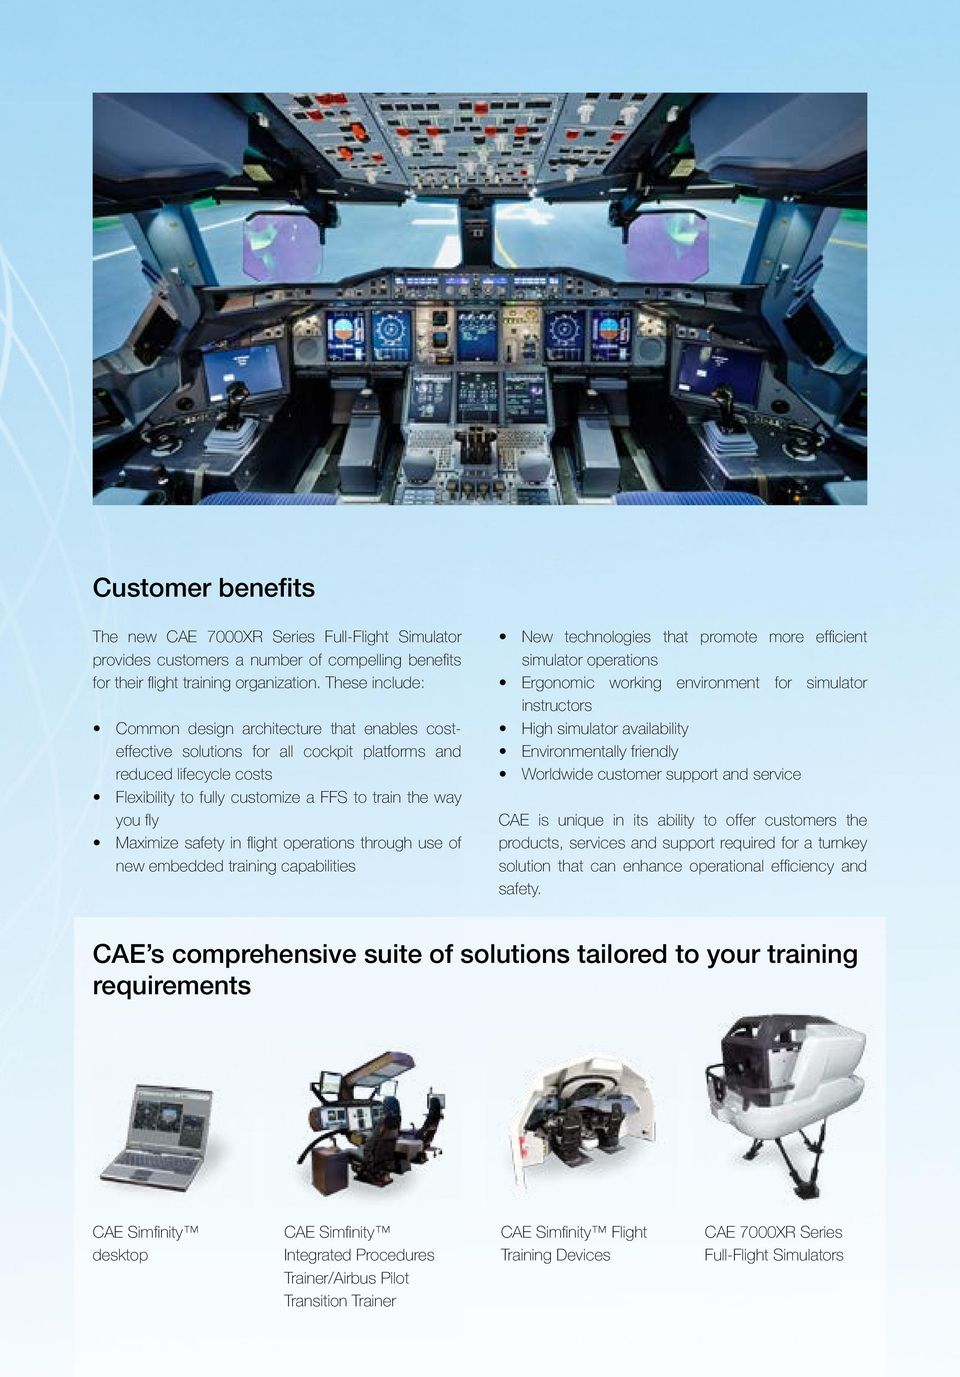 Maximize safety in flight operations through use of new embedded training capabilities New technologies that promote more efficient simulator operations Ergonomic working environment for simulator